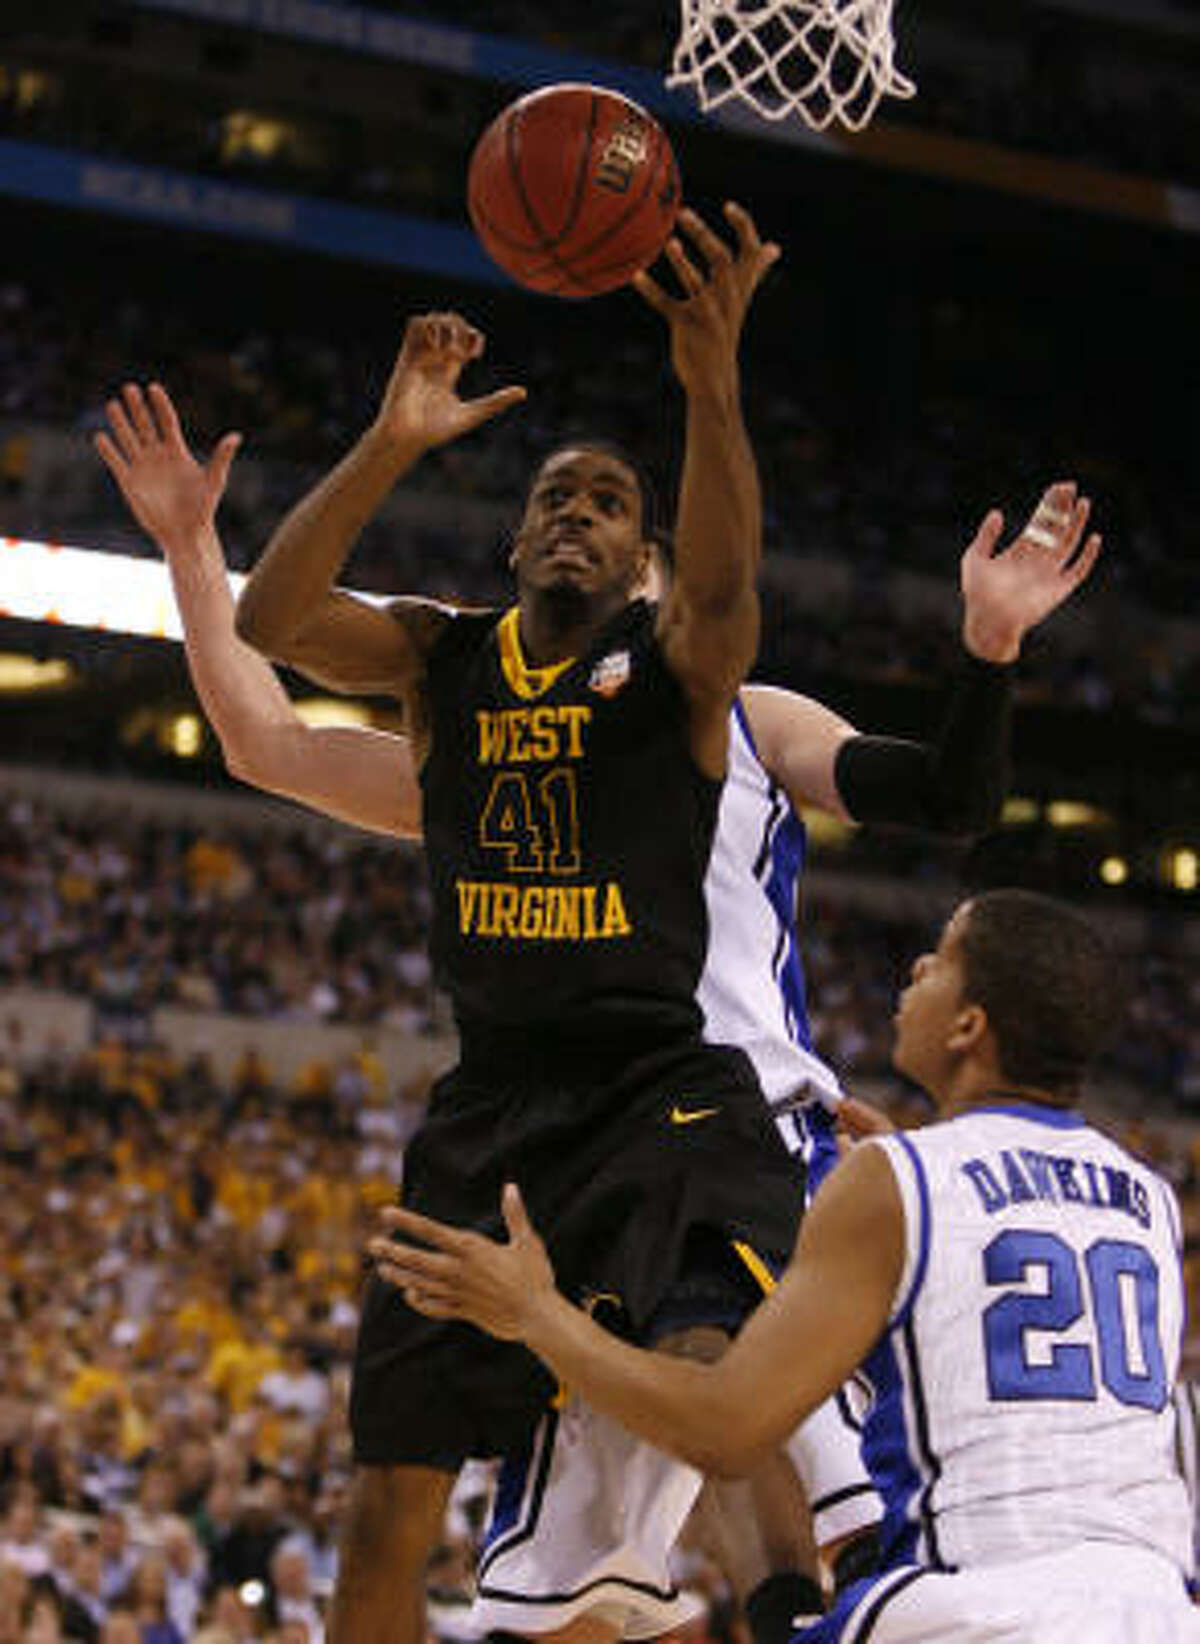 West Virginia forward John Flowers (41) tries to get to the basket during the first half.